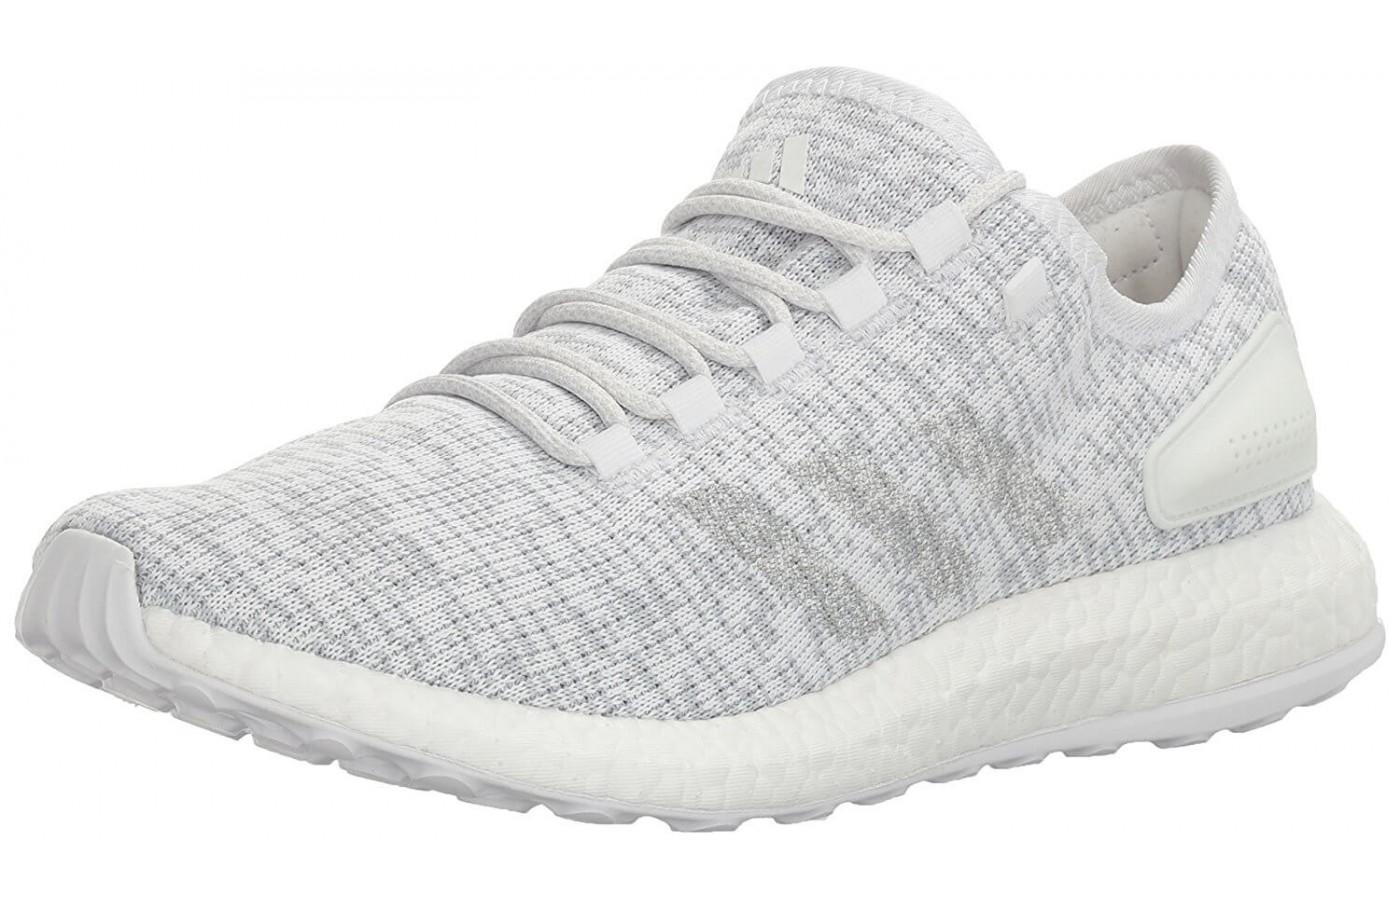 e7998a8ec84a2 Adidas PureBoost Reviewed - To Buy or Not in May 2019